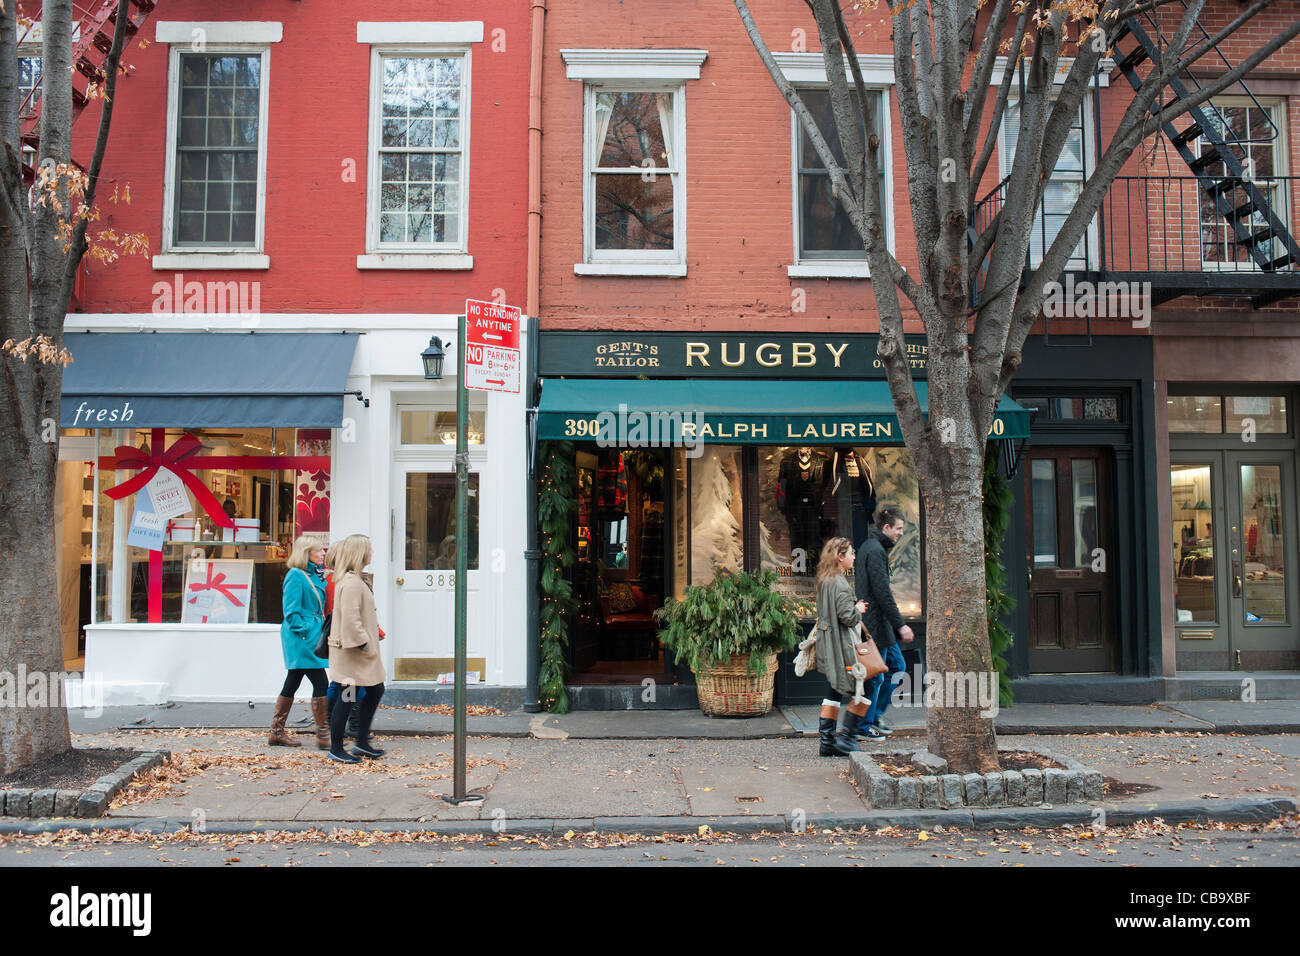 Lauren Rugby Ralph And Retail BusinessesIncluding Stores Upscale byYg67f